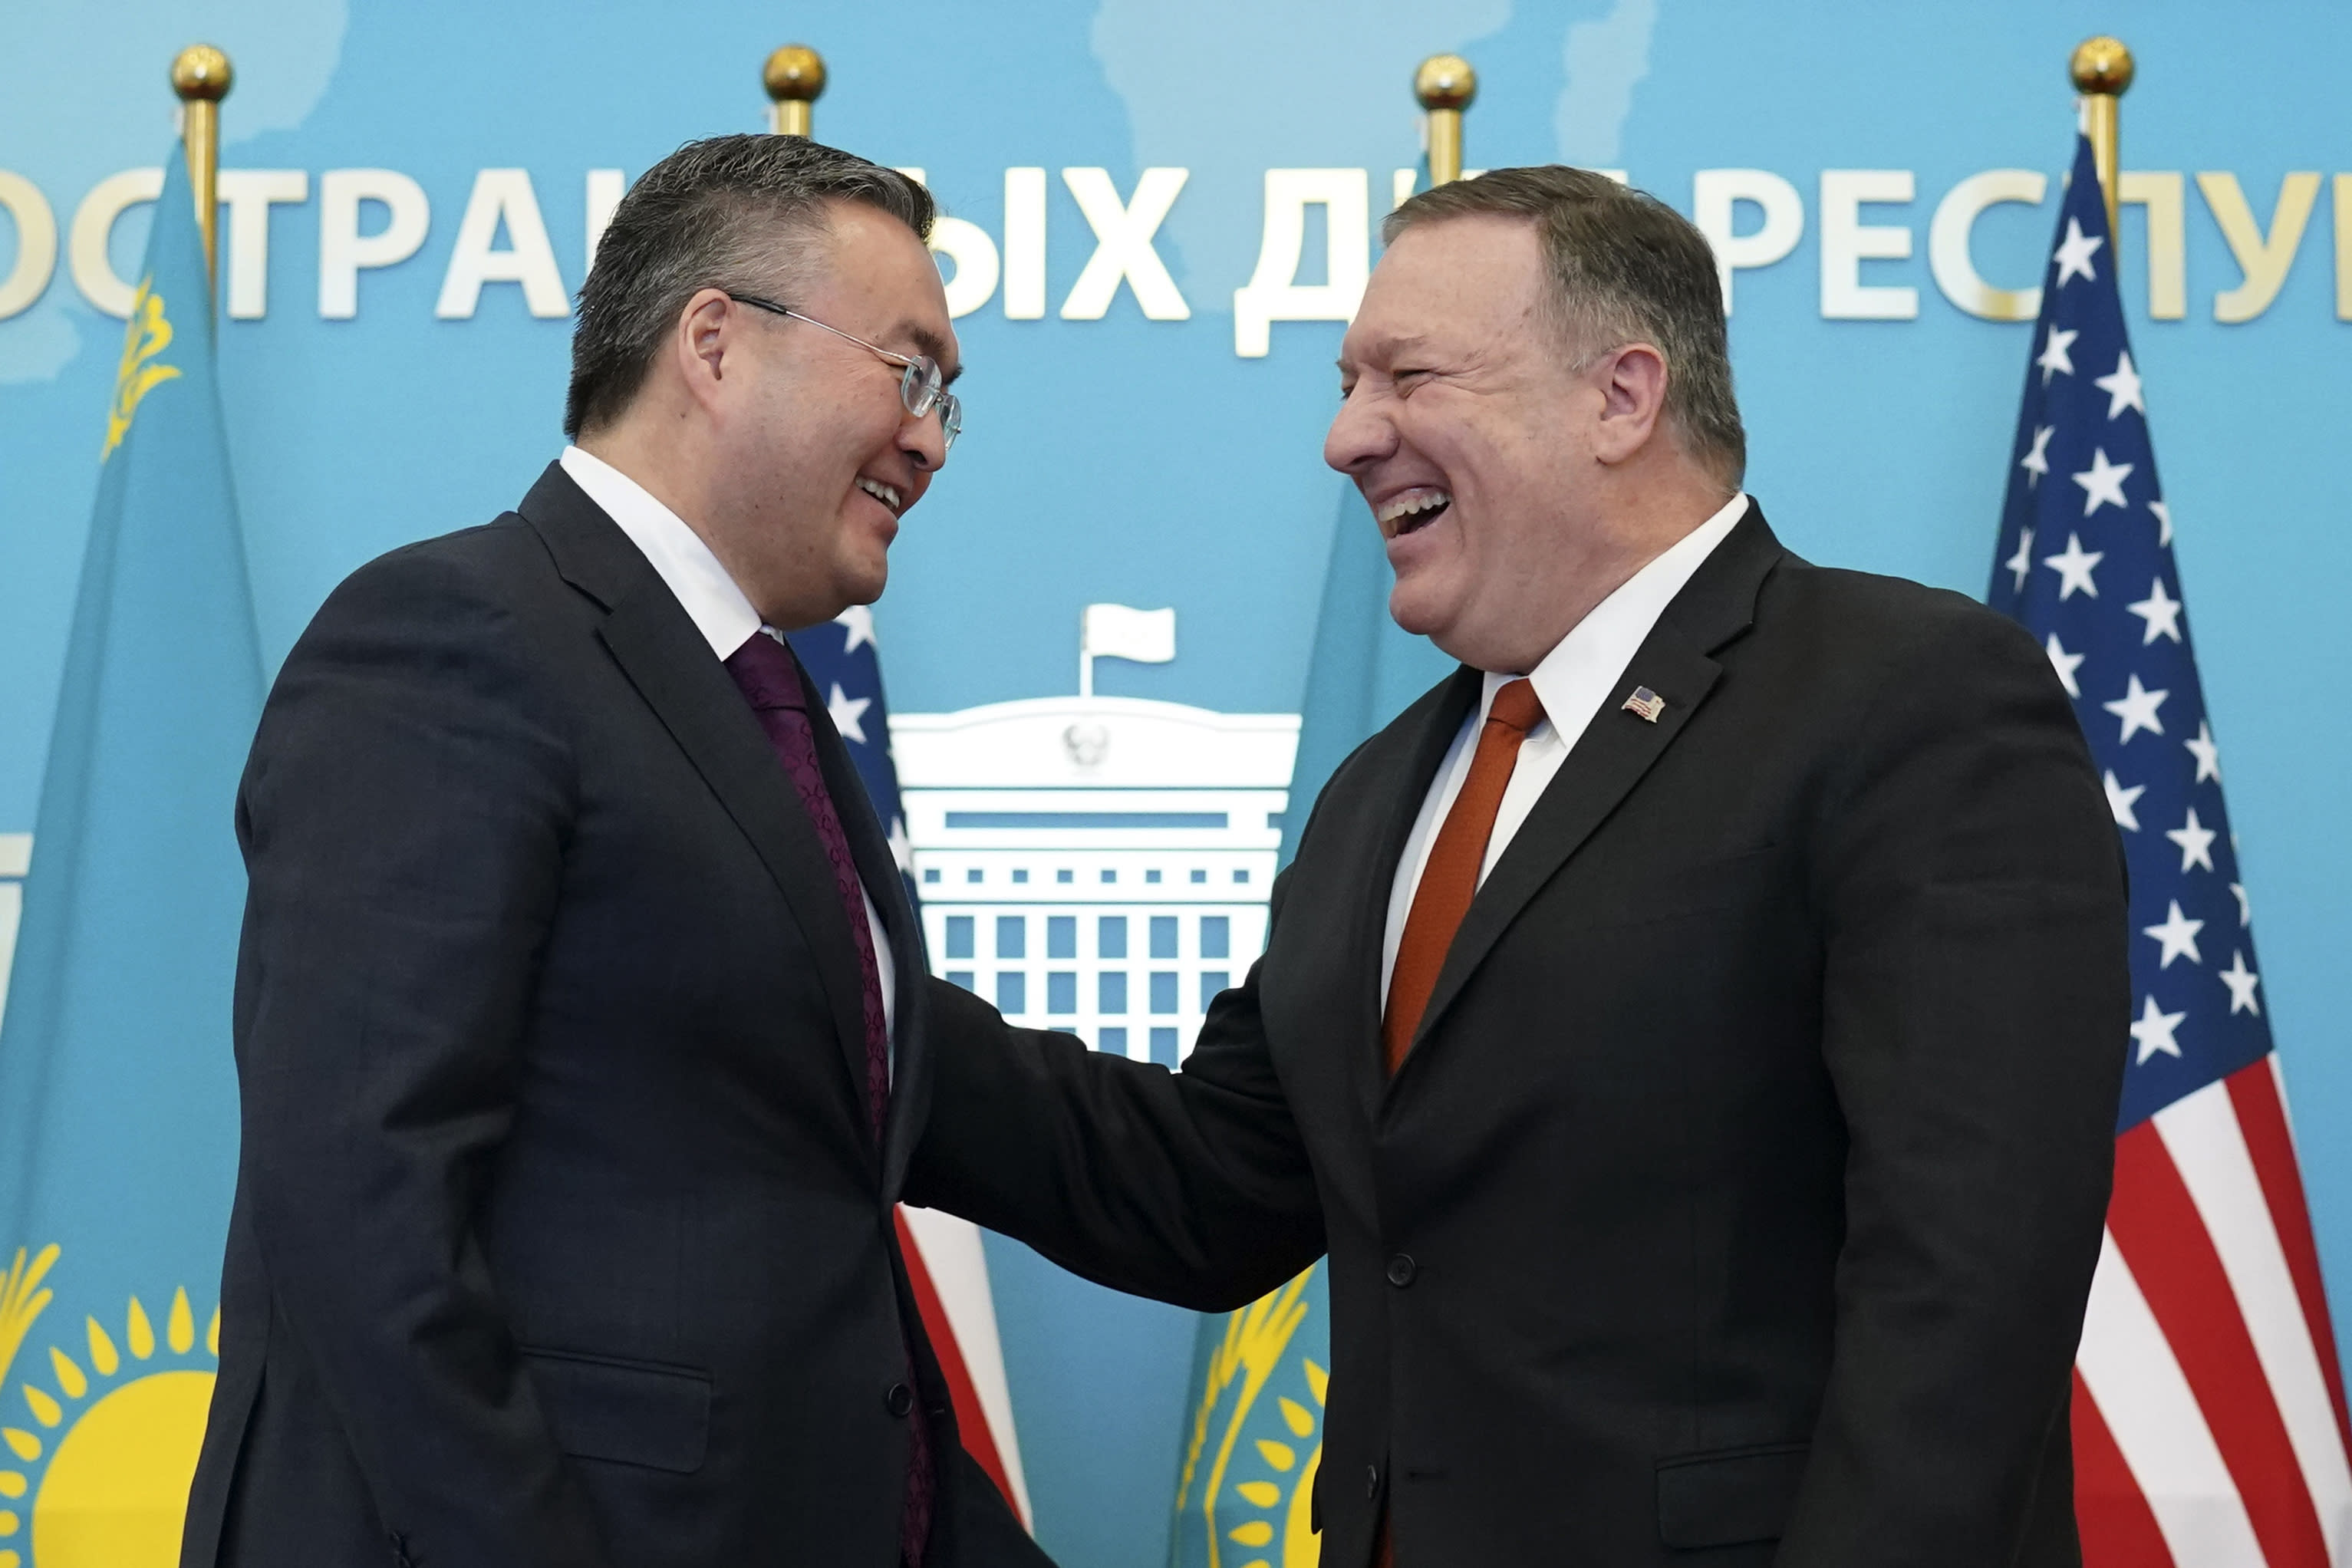 U.S. Secretary of State Mike Pompeo, right, reacts after holding a joint news conference with Kazakh Foreign Minister Mukhtar Tleuberdi at the Ministry of Foreign Affairs in Nur-Sultan, Kazakhstan, Sunday, Feb. 2, 2020. (Kevin Lamarque/Pool Photo via AP)